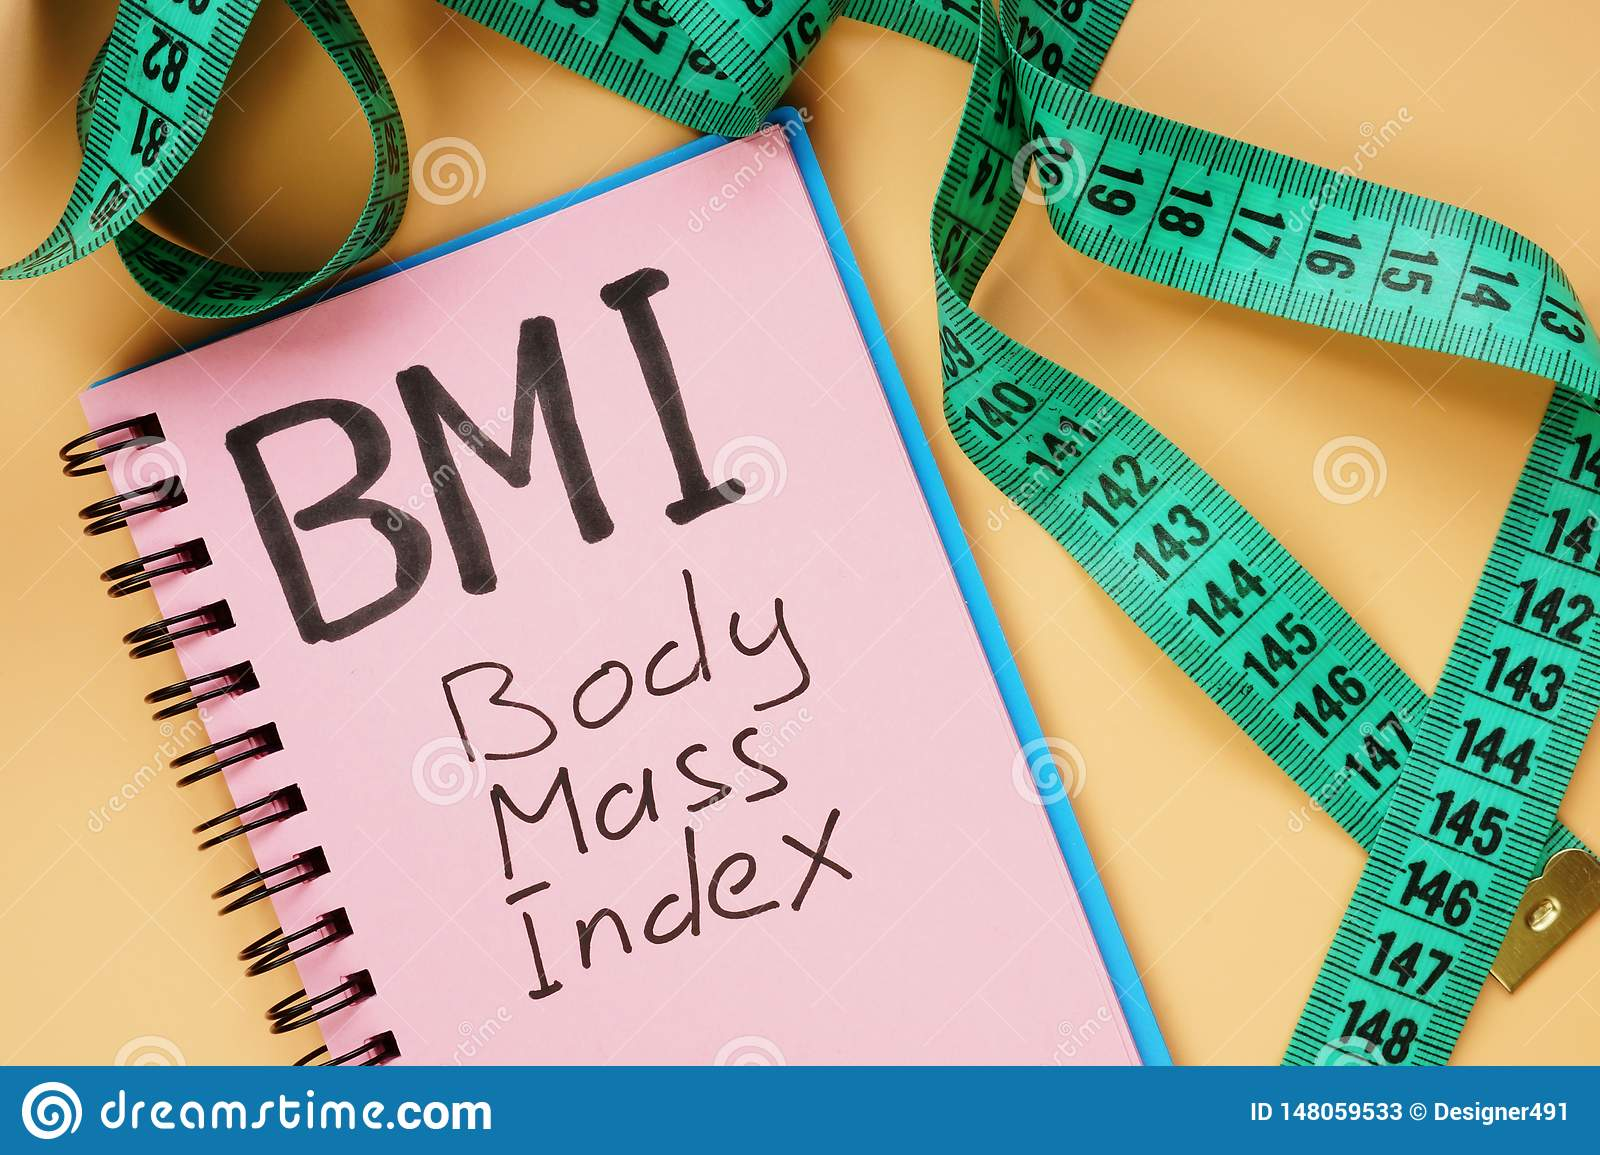 Bmi Body Mass Index Sign And Measuring Tape Stock Image